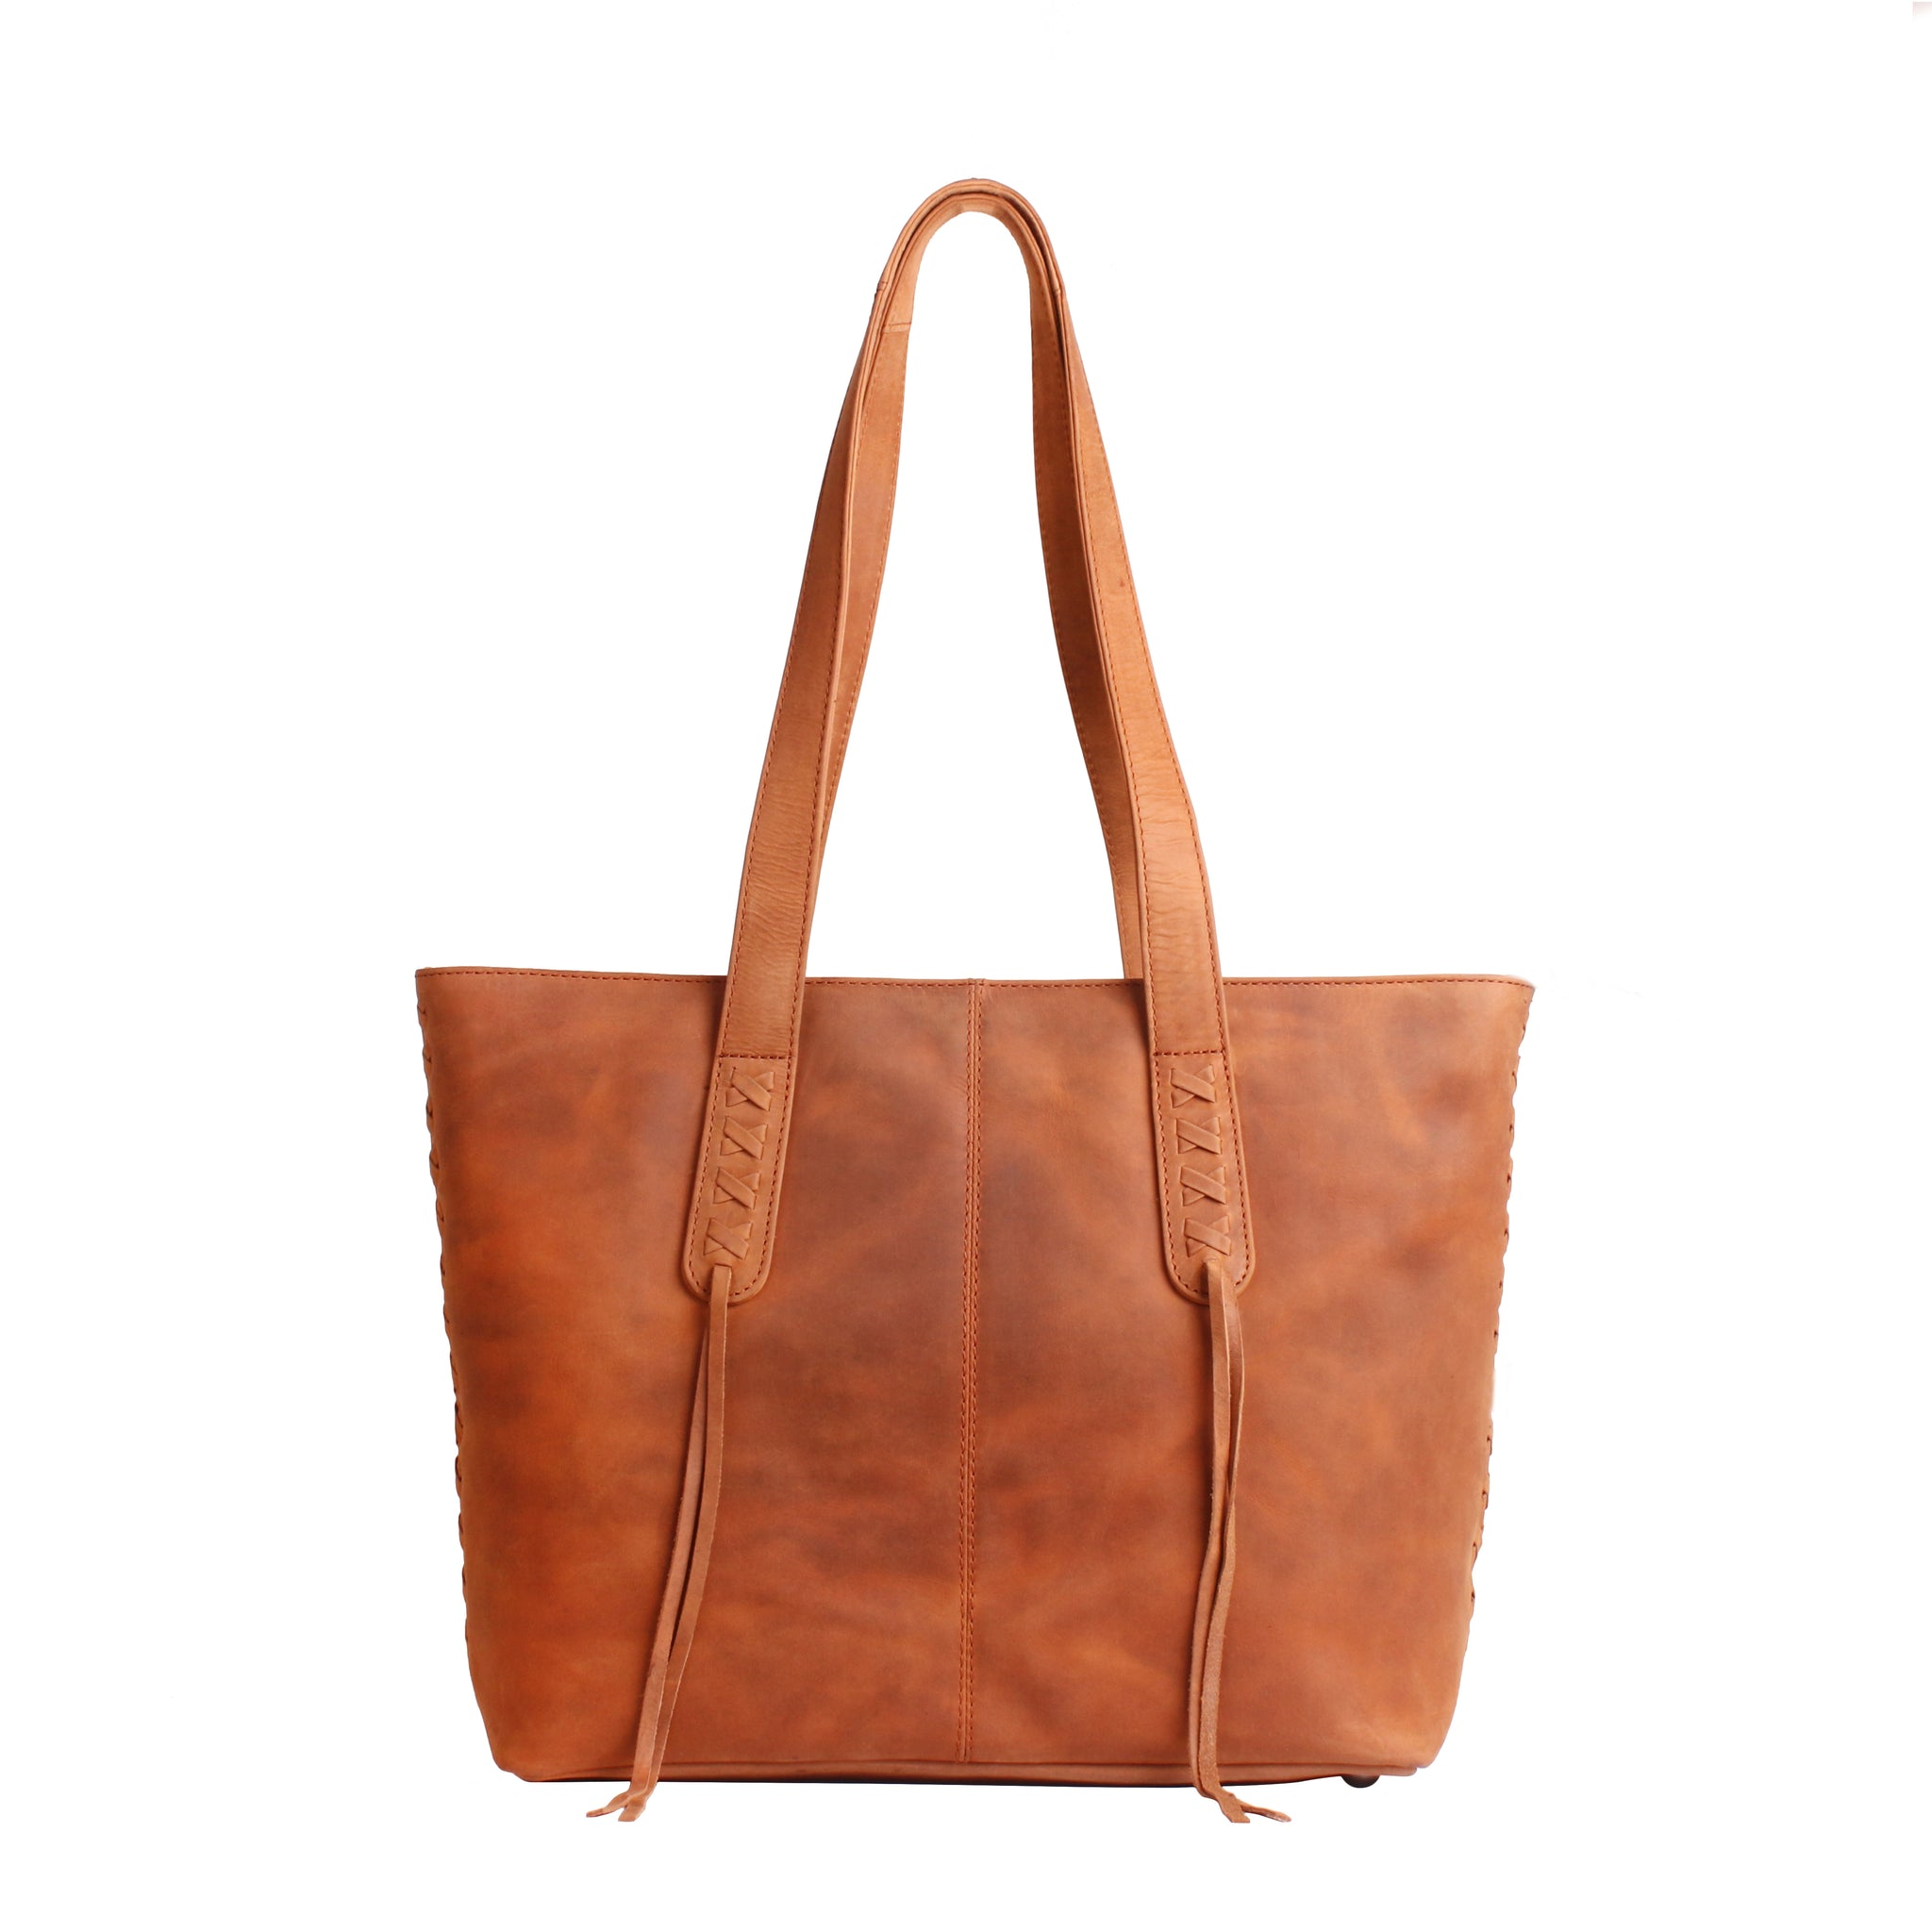 The Concealed Carry Norah Leather Laced Tote is constructed with premium full-grain leather. This superior leather is unique and has its own natural variations in grain and shading. It features intricate leather crisscross stitching on both the front and back with decorative long tassels on the front. CCW Purse in Caramel Front image